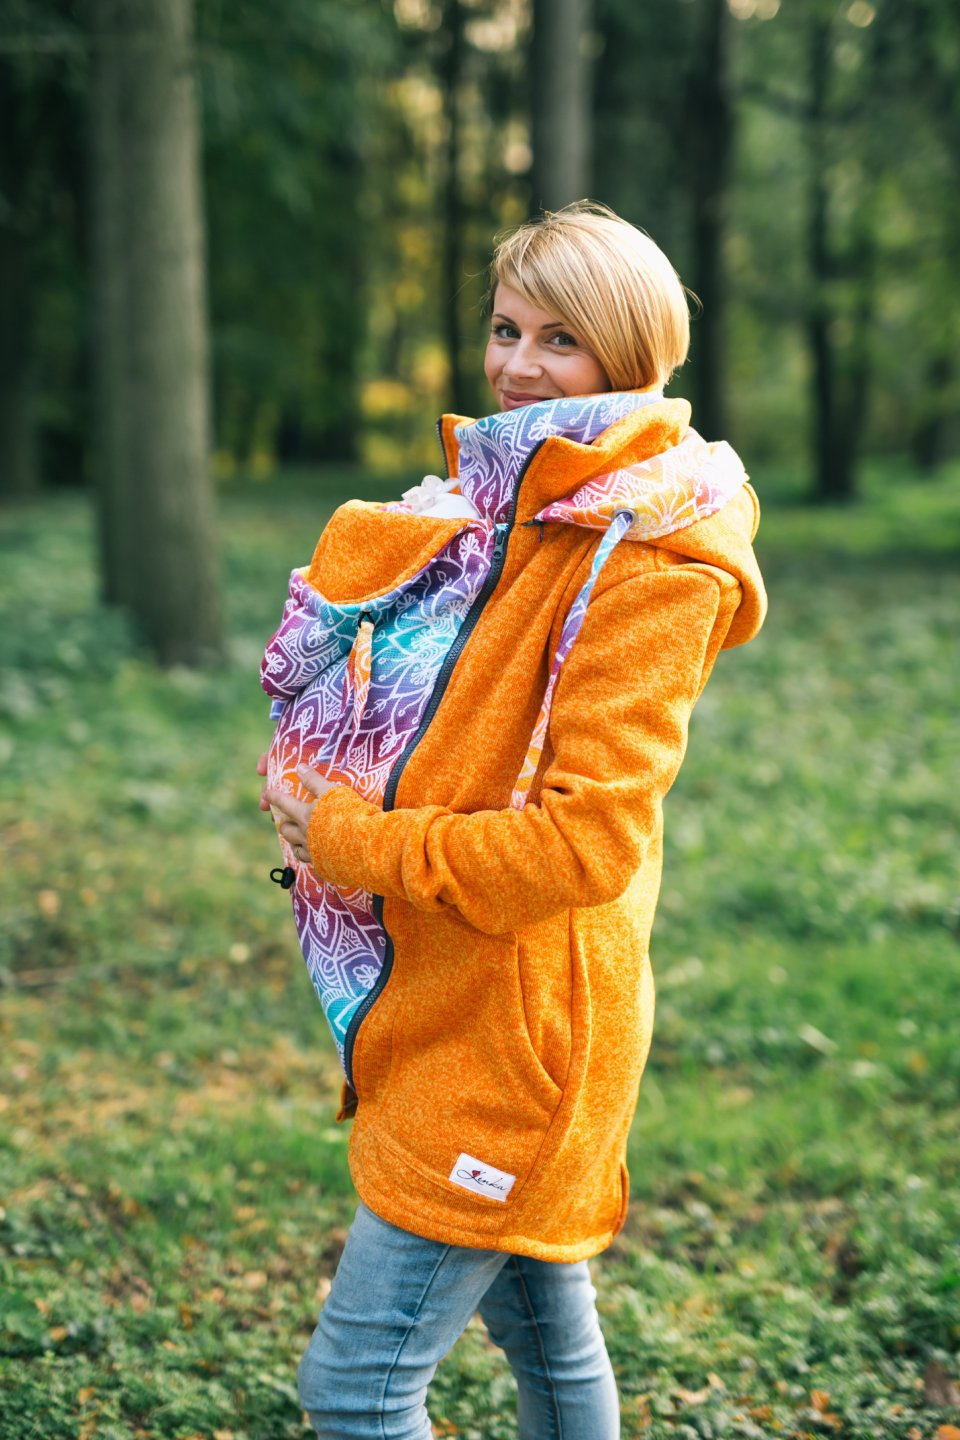 Baby Wearing Orange Sweater - Be Lenka Mandala - Rainbow